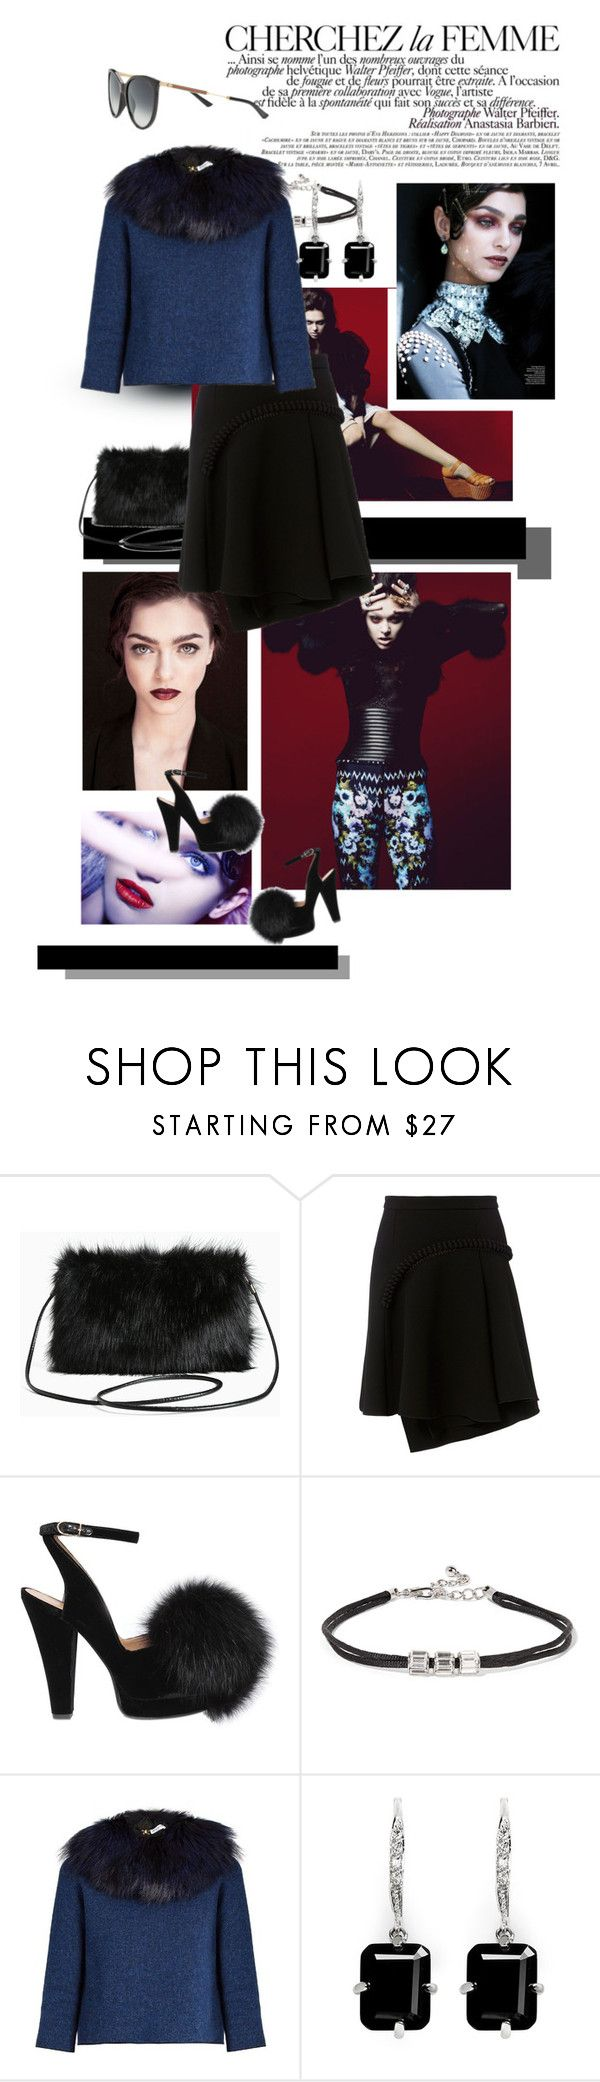 """La Femme"" by mathilda-moo ❤ liked on Polyvore featuring Torrid, La Femme, Carven, Sonia Rykiel, Kenneth Jay Lane, CZ by Kenneth Jay Lane, Gucci, fur, fuzzycoat and Winter2016"